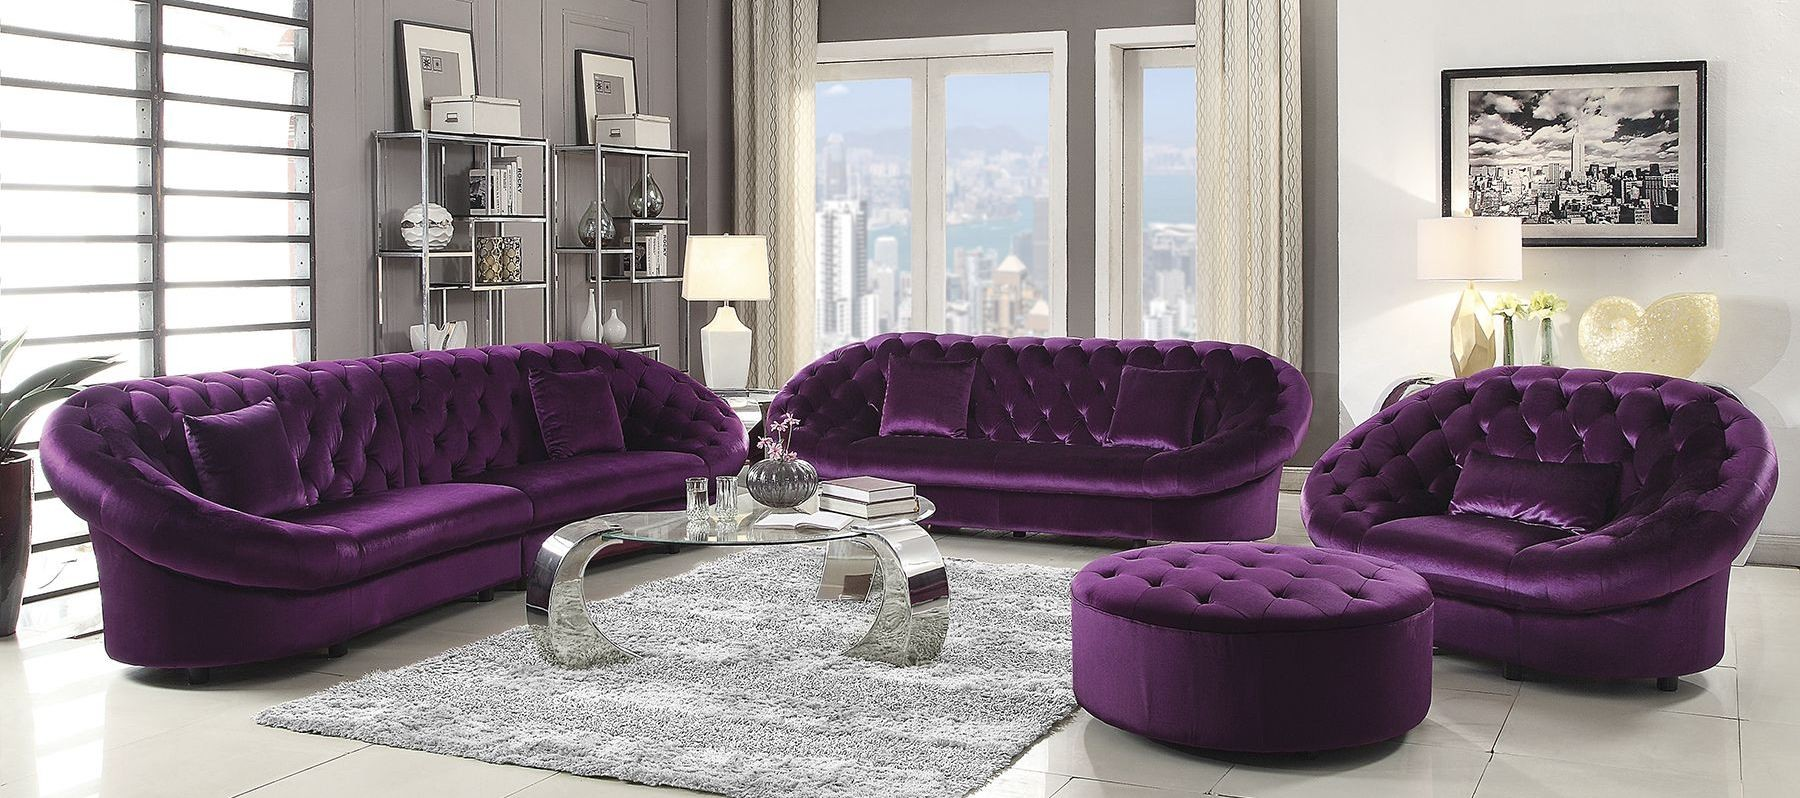 Romanus Purple Velvet Living Room Set 511046 Coaster